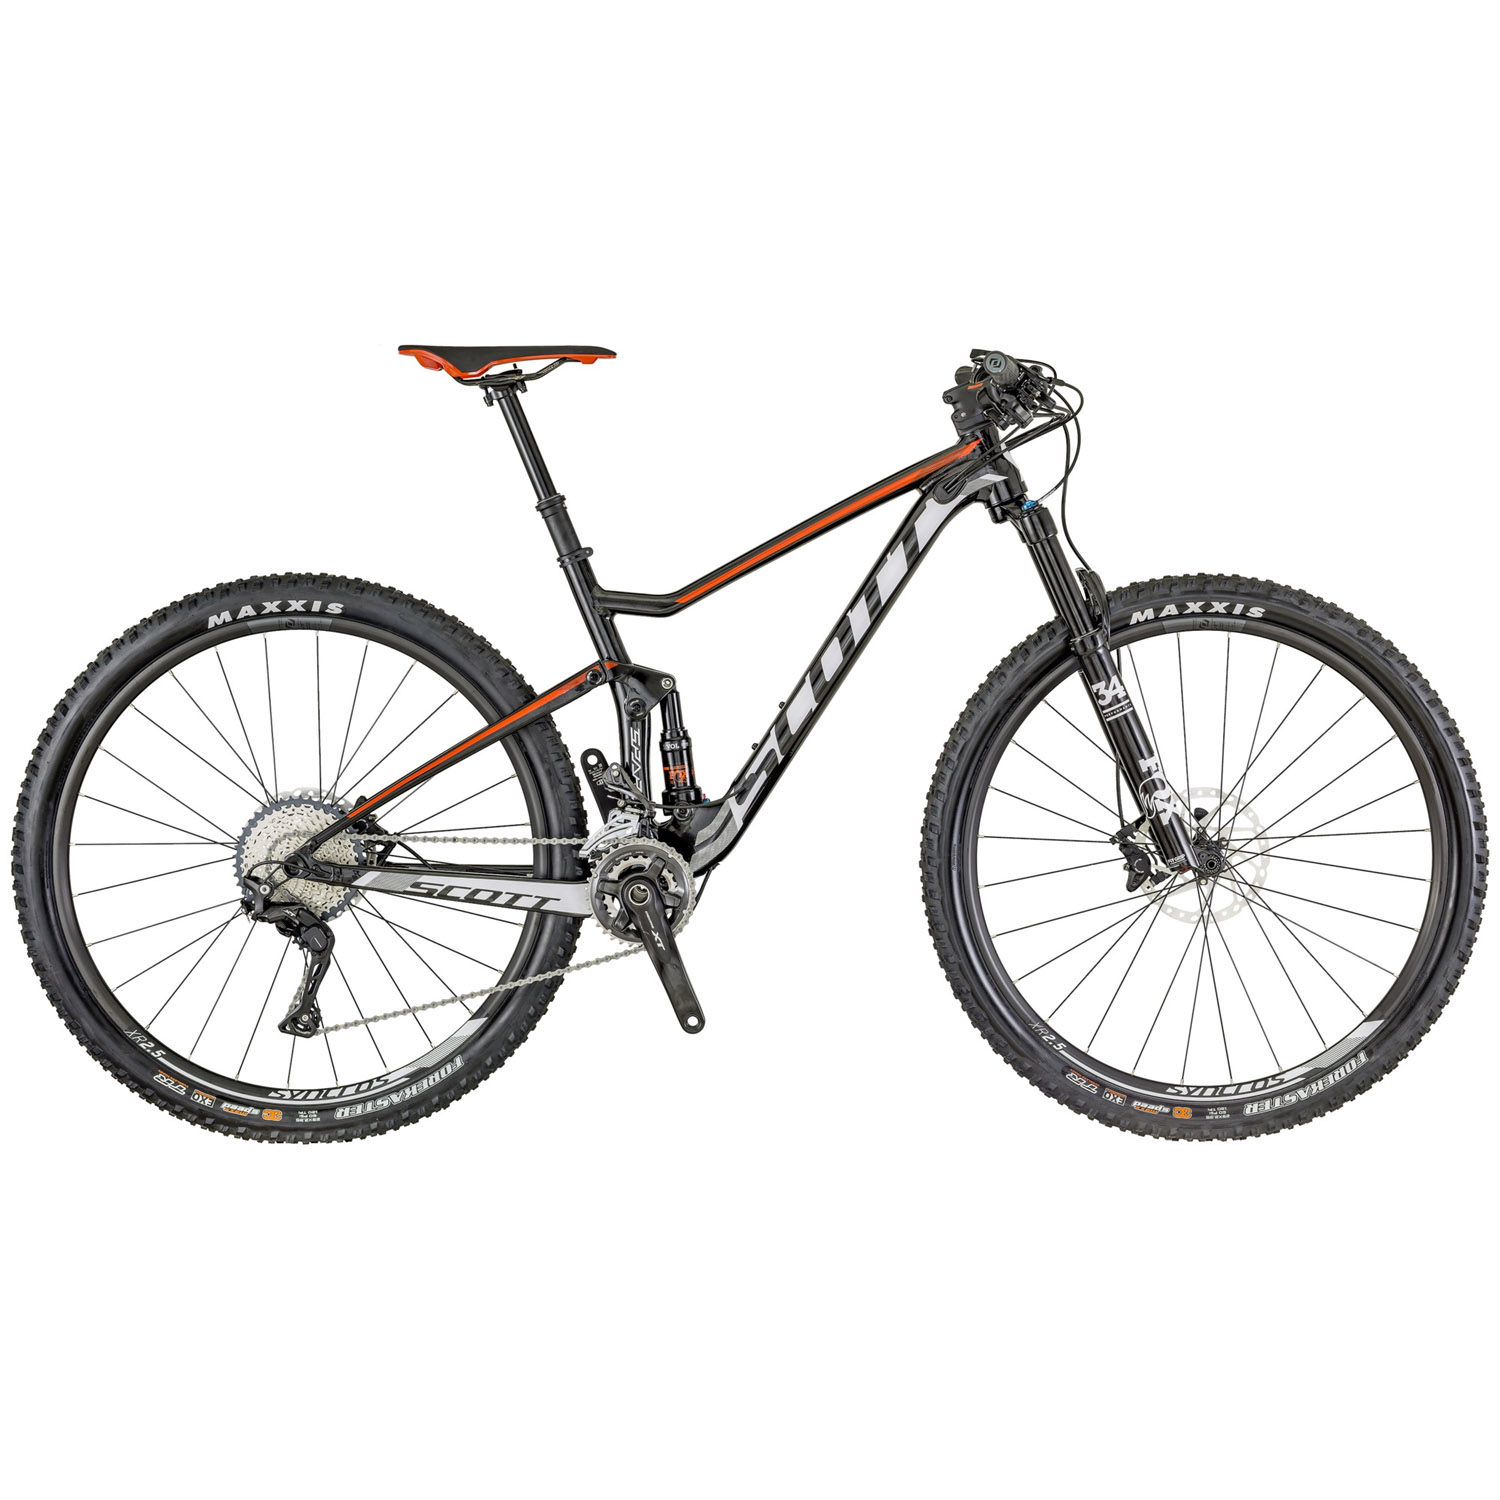 scott spark 930 fullsuspension mountainbike 29 zoll 44 cm. Black Bedroom Furniture Sets. Home Design Ideas